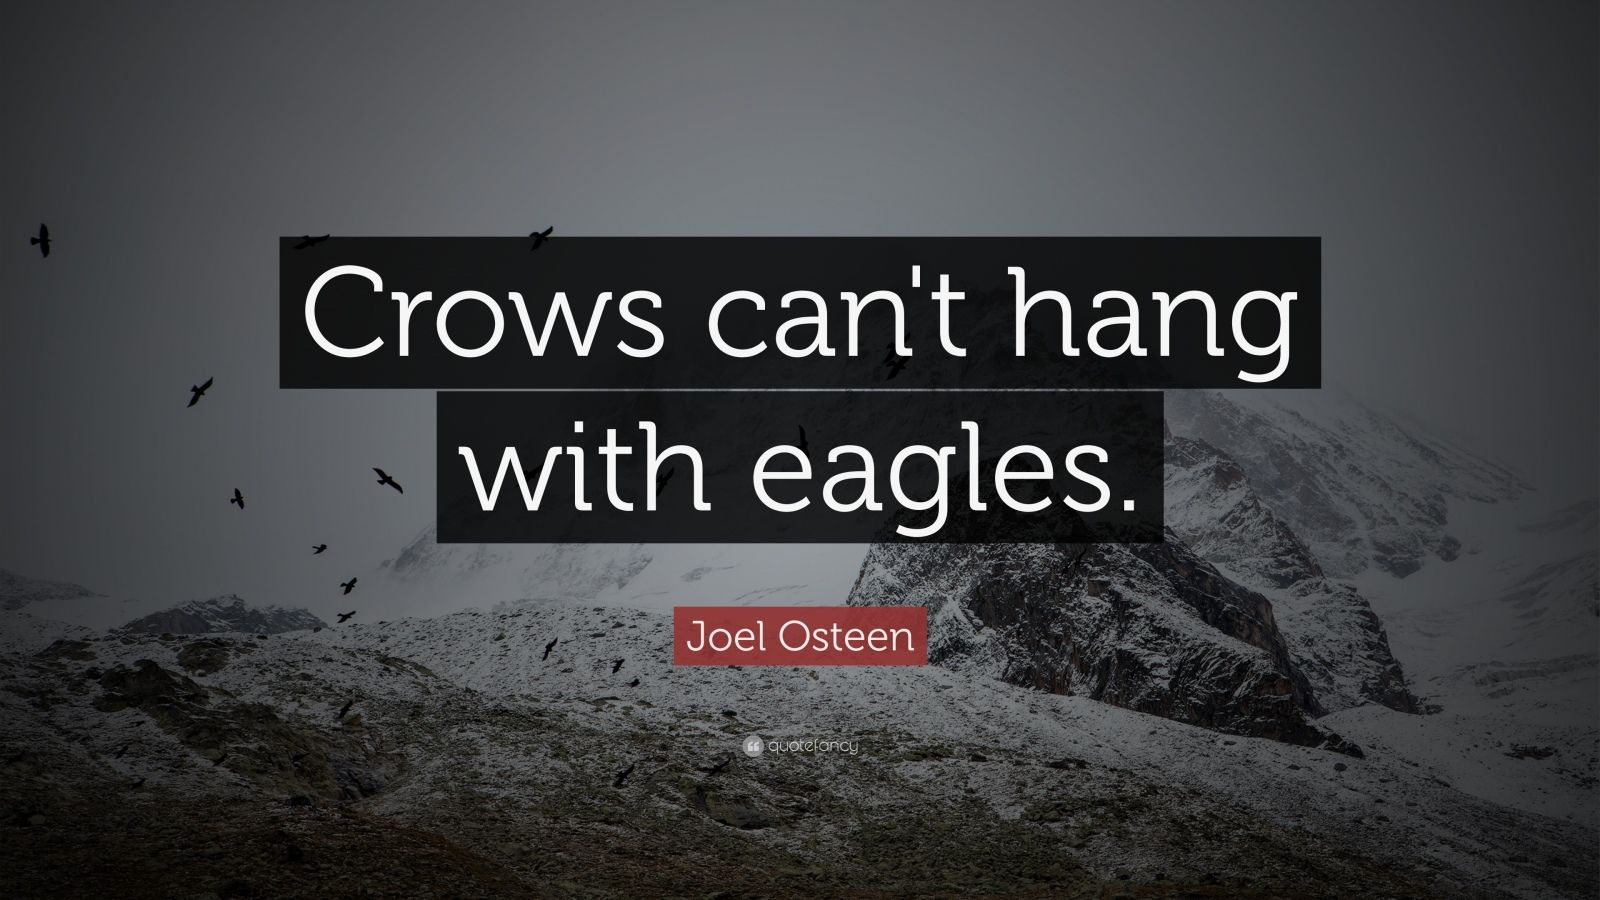 Dr Seuss Quotes Love Wallpaper Joel Osteen Quote Crows Can T Hang With Eagles 11